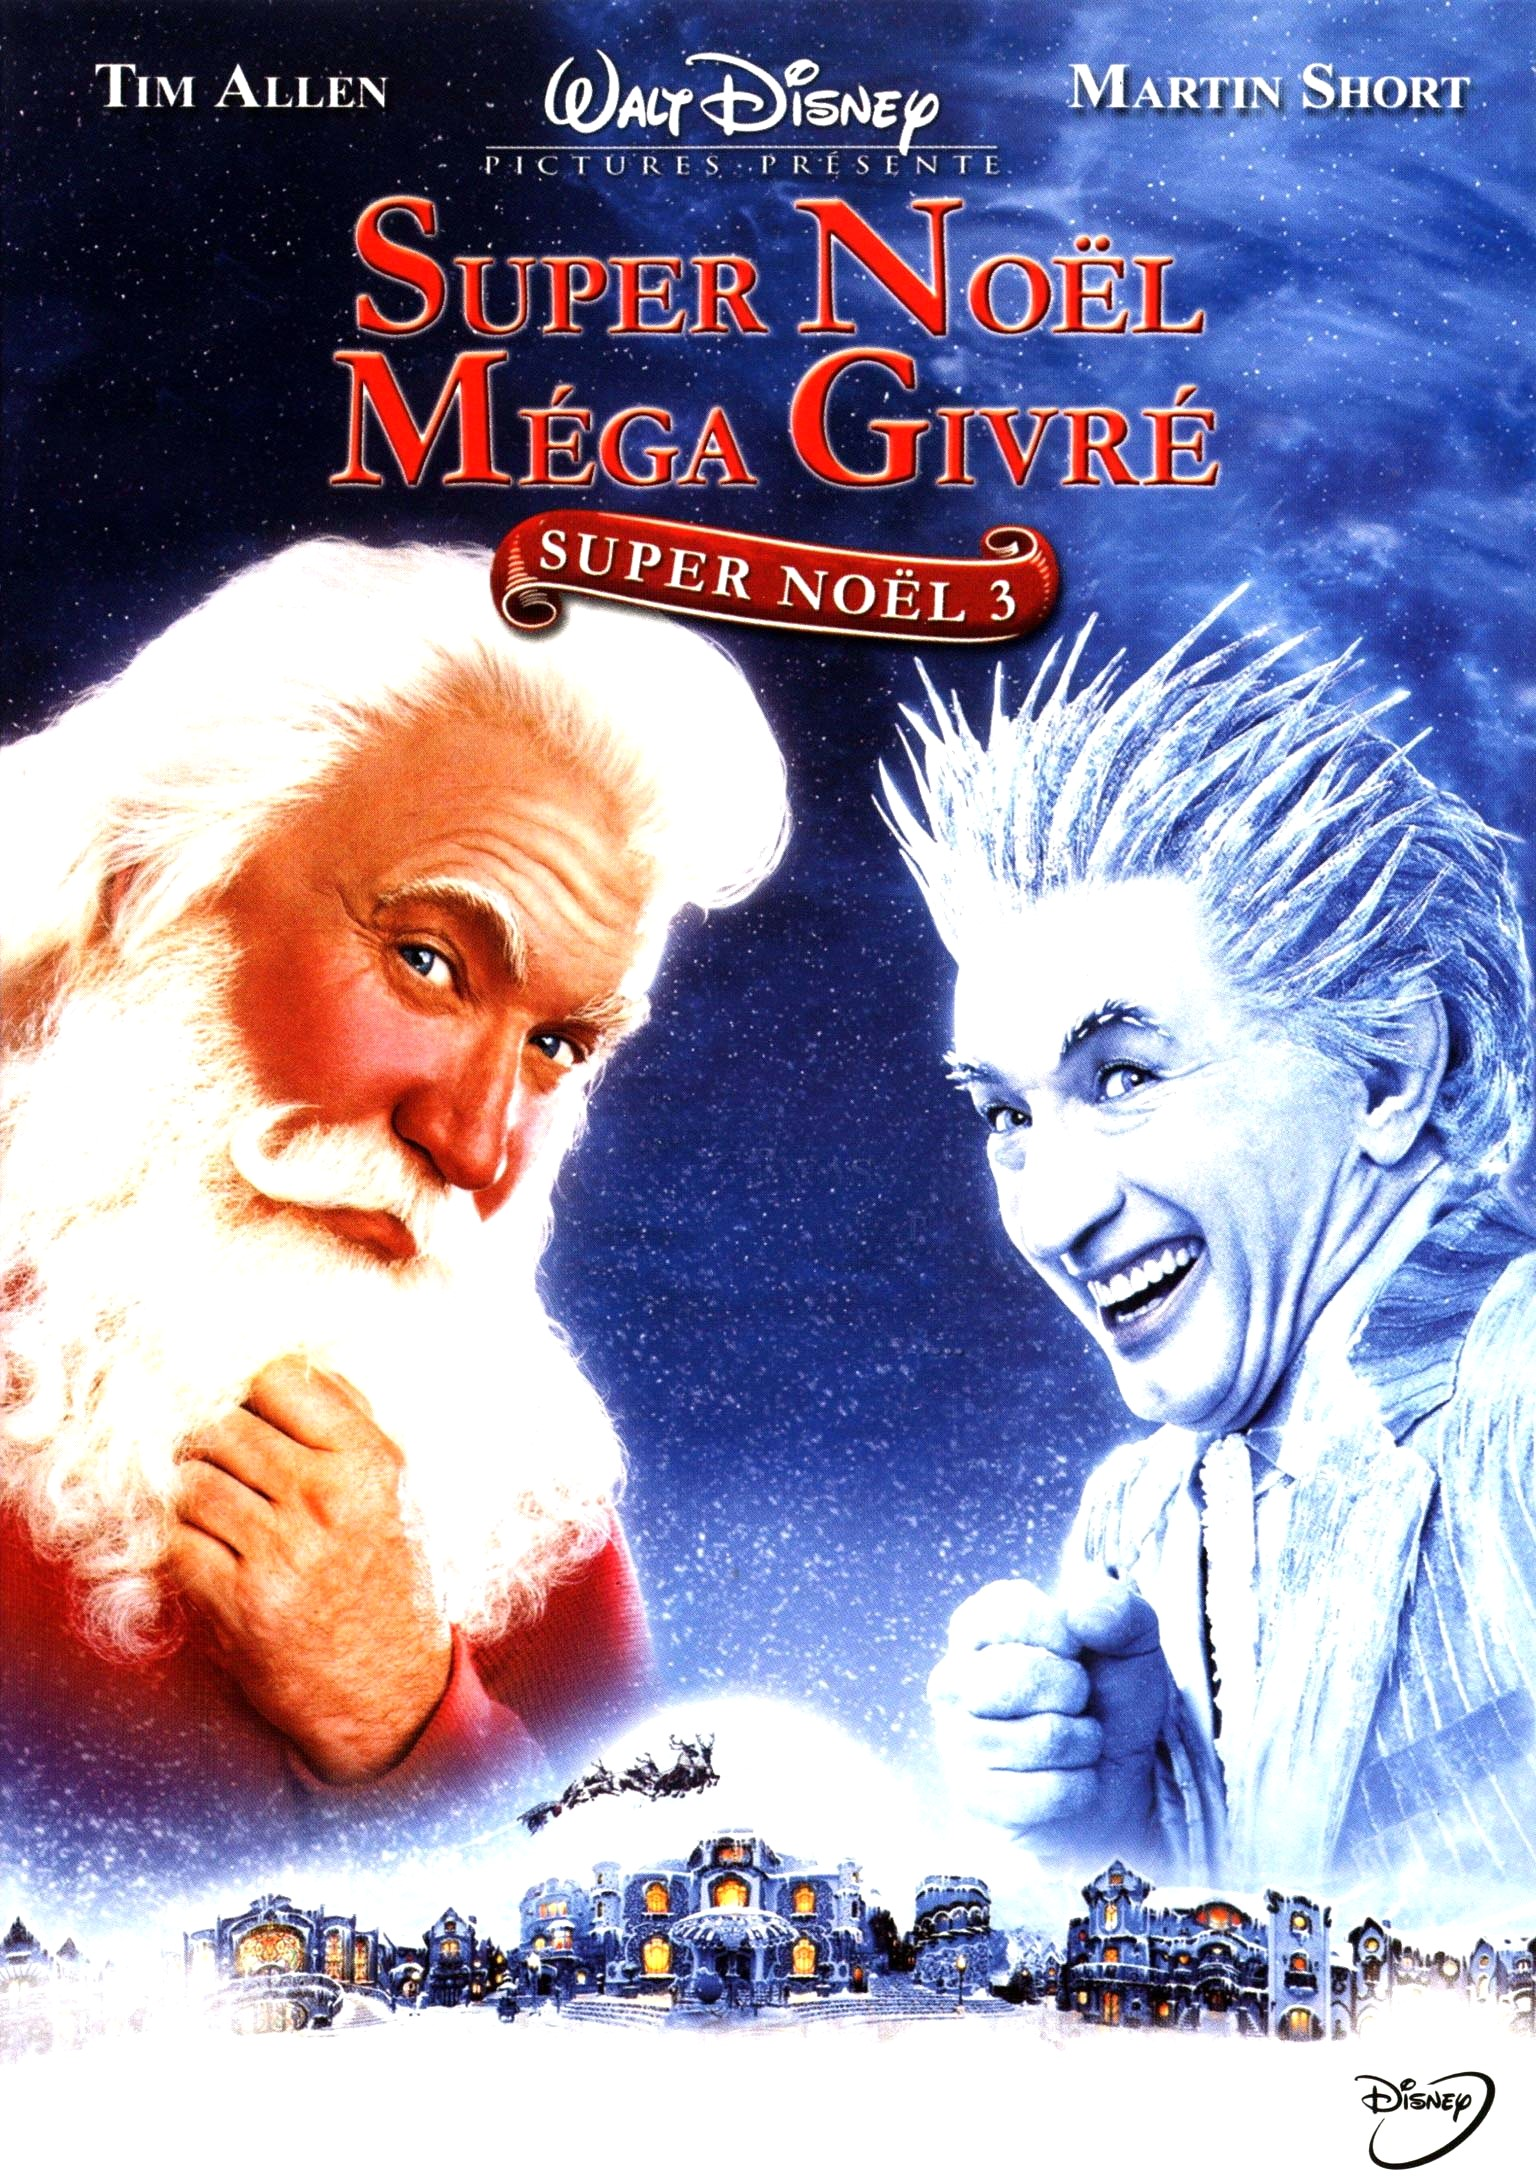 walt disney company walt disney pictures affiche super noel 3 mega givre poster santa clause 3 escape clause